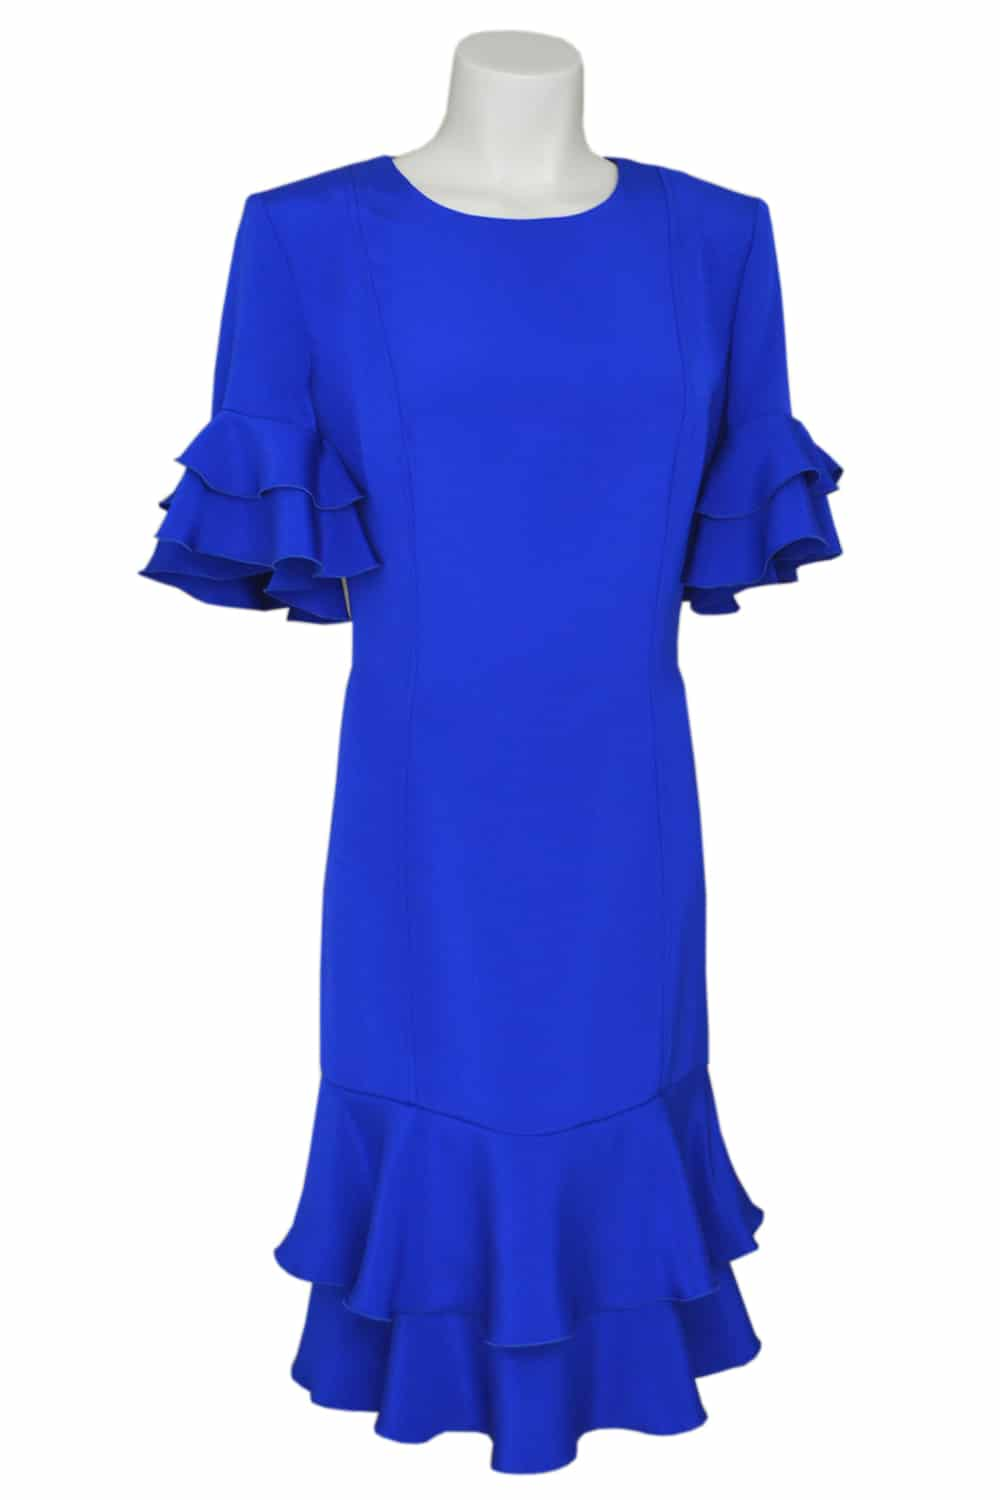 Blue dress 100% silk with ruffles. Ready-to-wear summer collection by the French fashion designer Erik Schaix